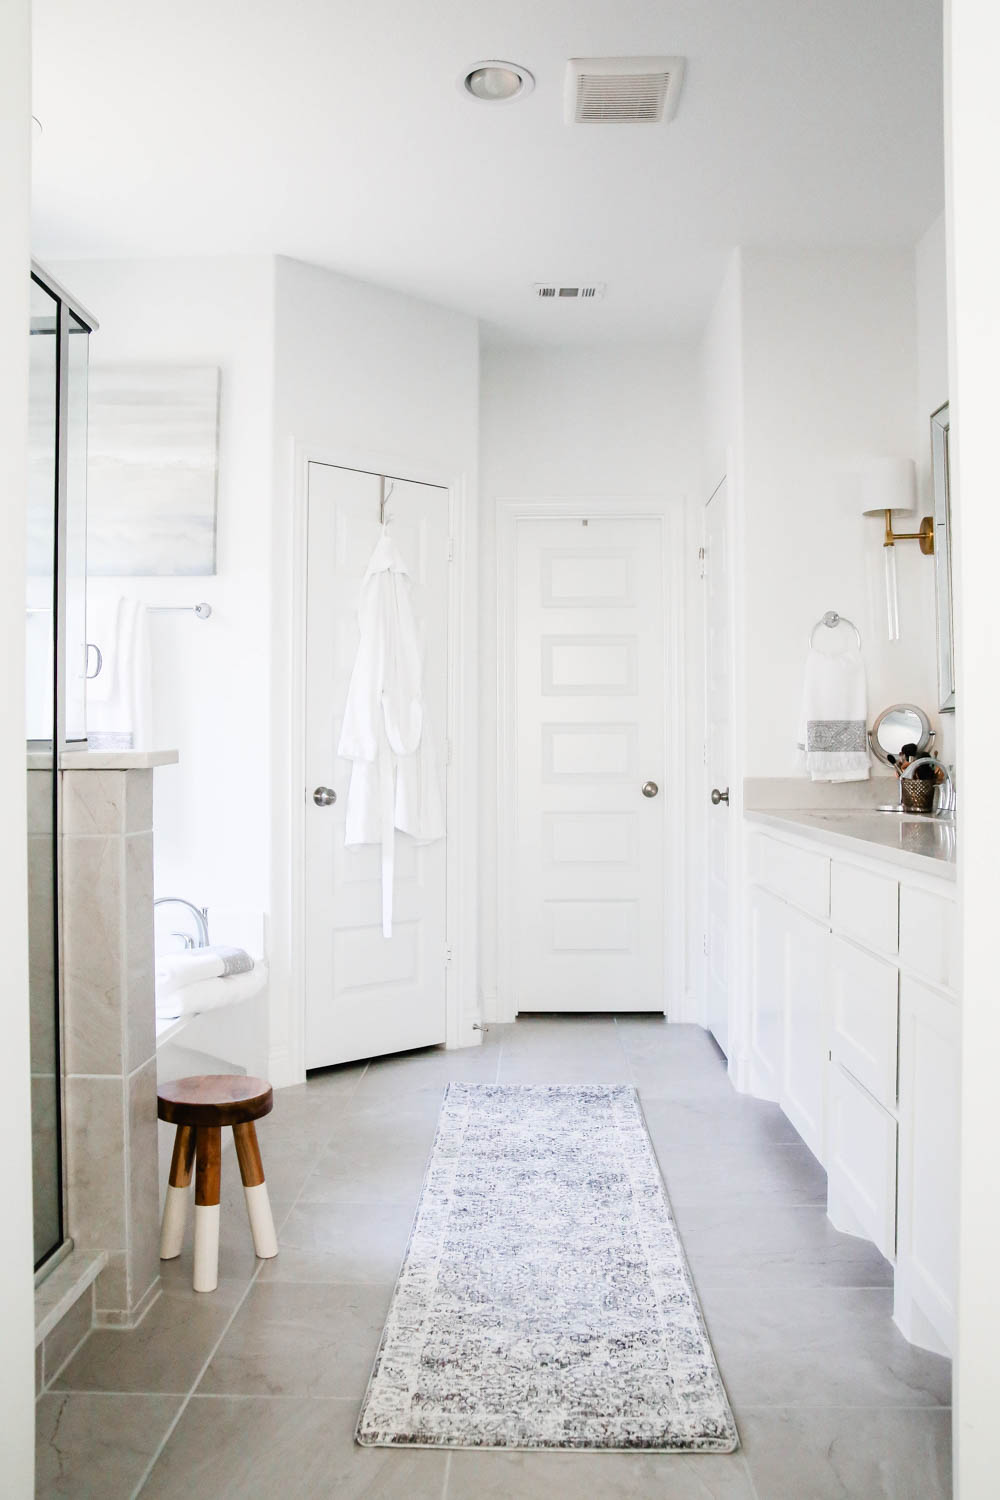 Use a runner rather than bathmats to add warmth to a space. #AtHomeStores #AtHomeFinds #ABlissfulNest #ad